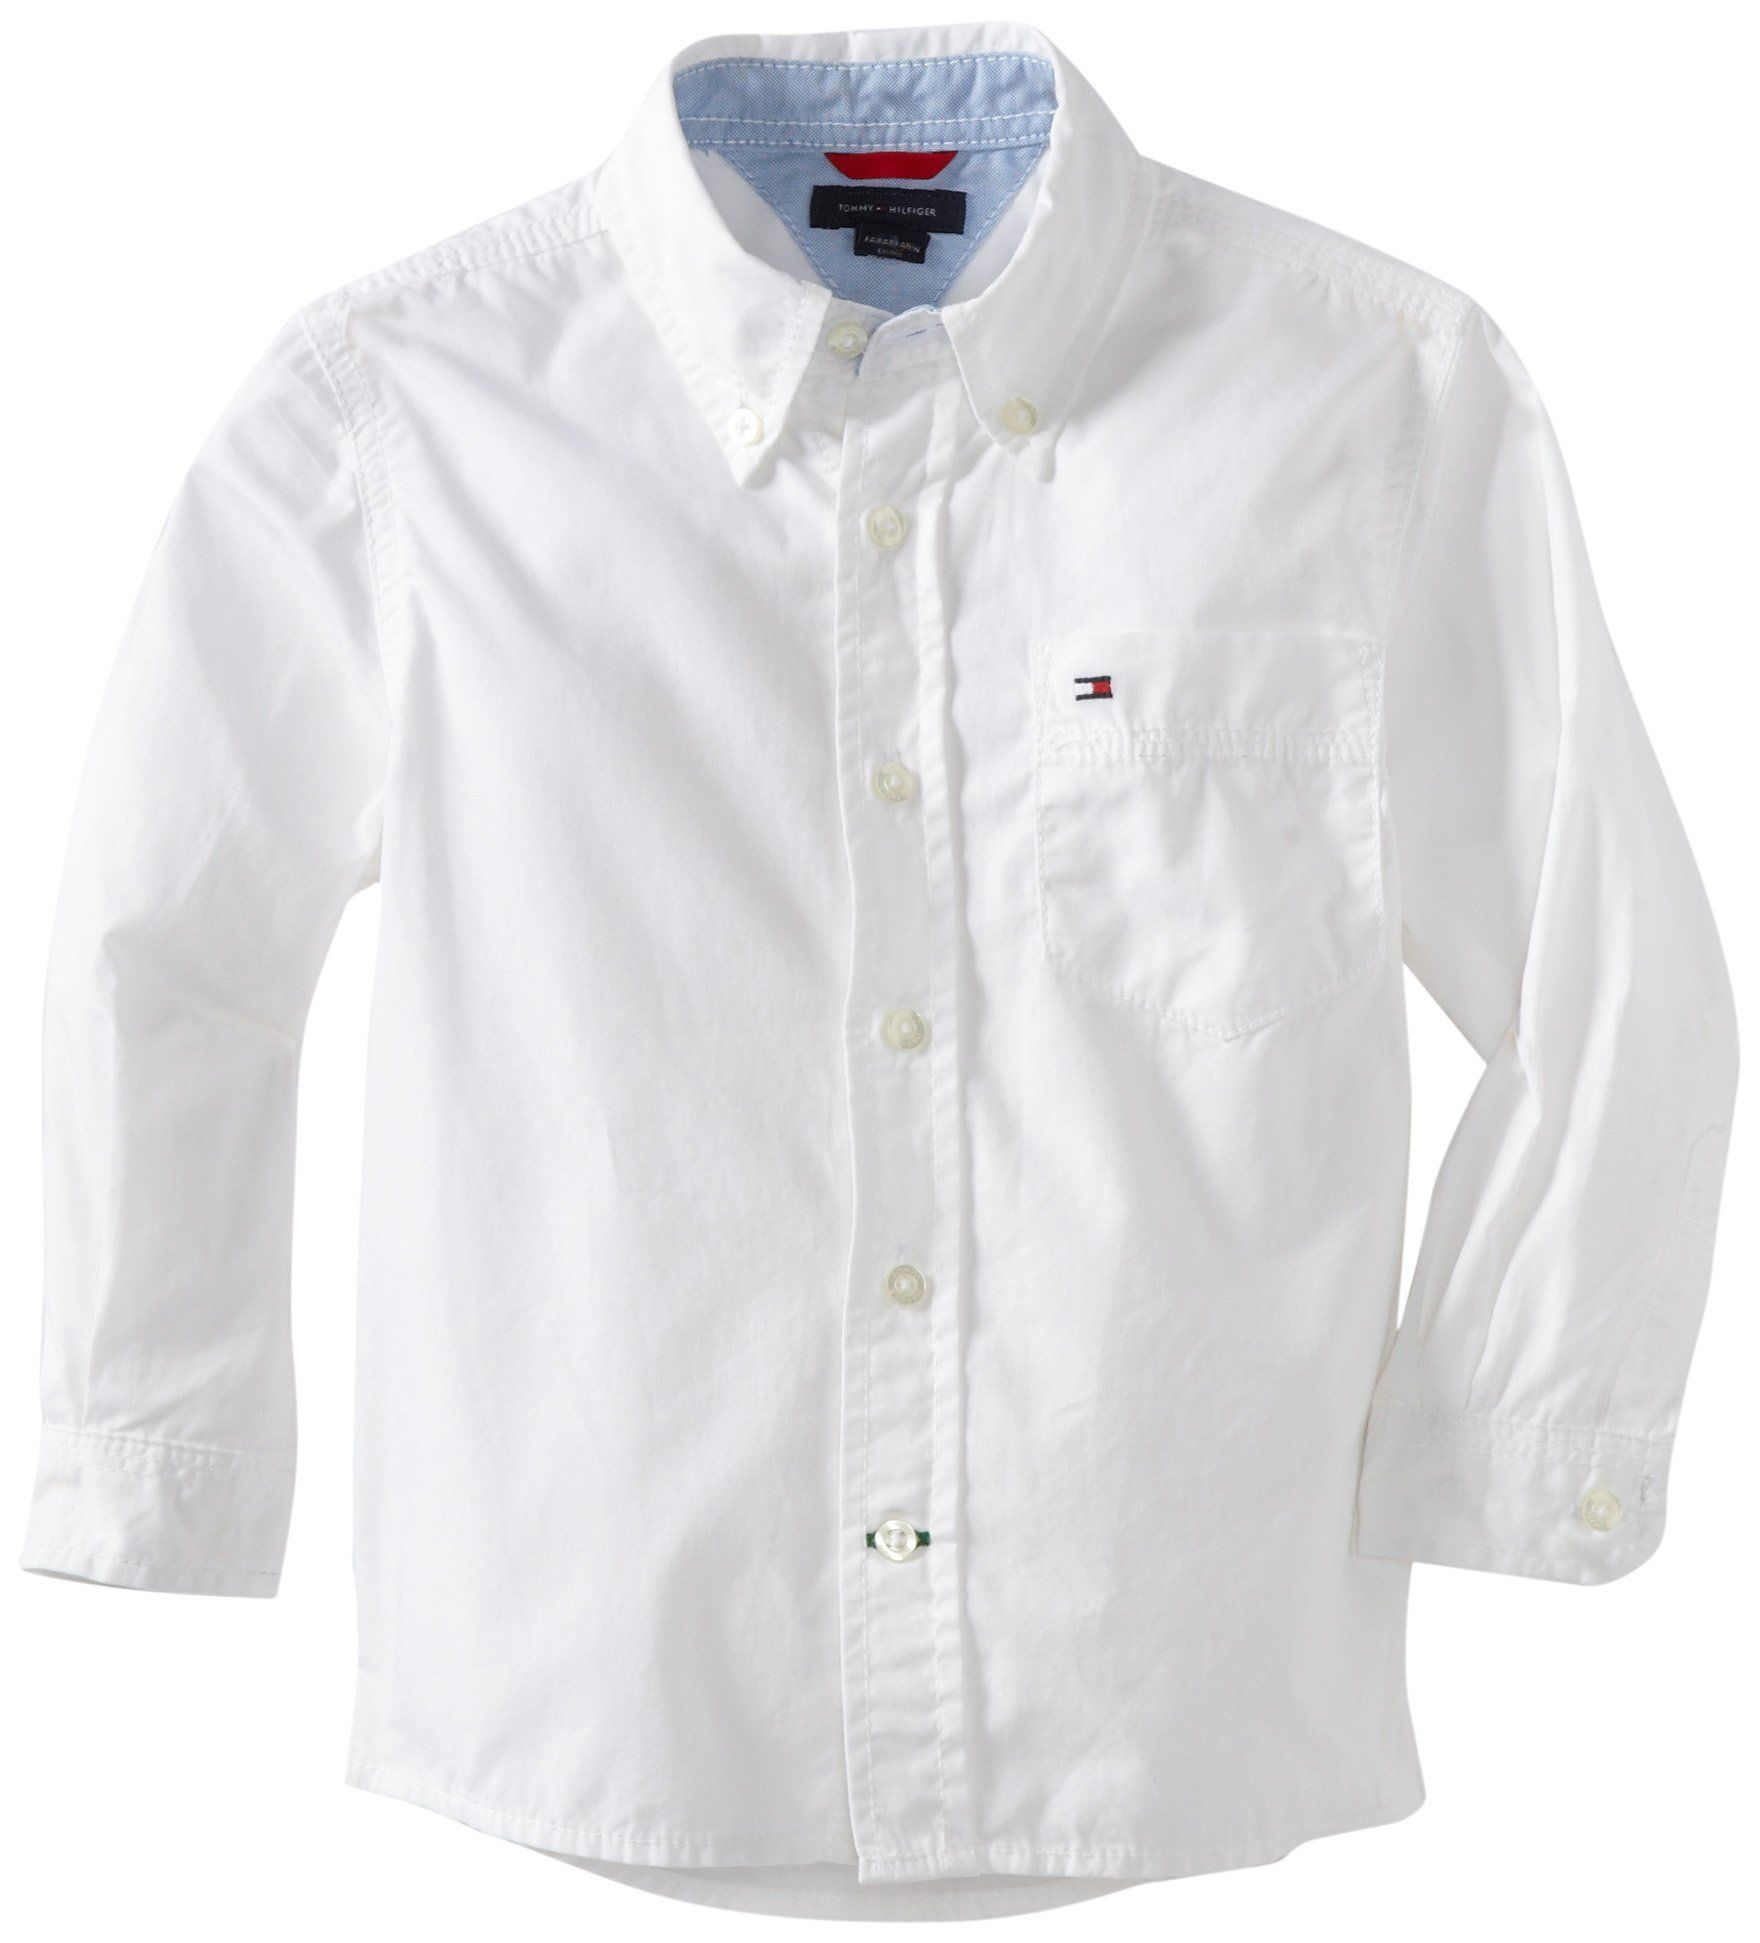 Tommy Hilfiger Big Boys' Classic Long Sleeve Woven Shirt, Classic White, Large. Button-front shirt with button-down collar featuring patch chest pocket with embroidered logo.